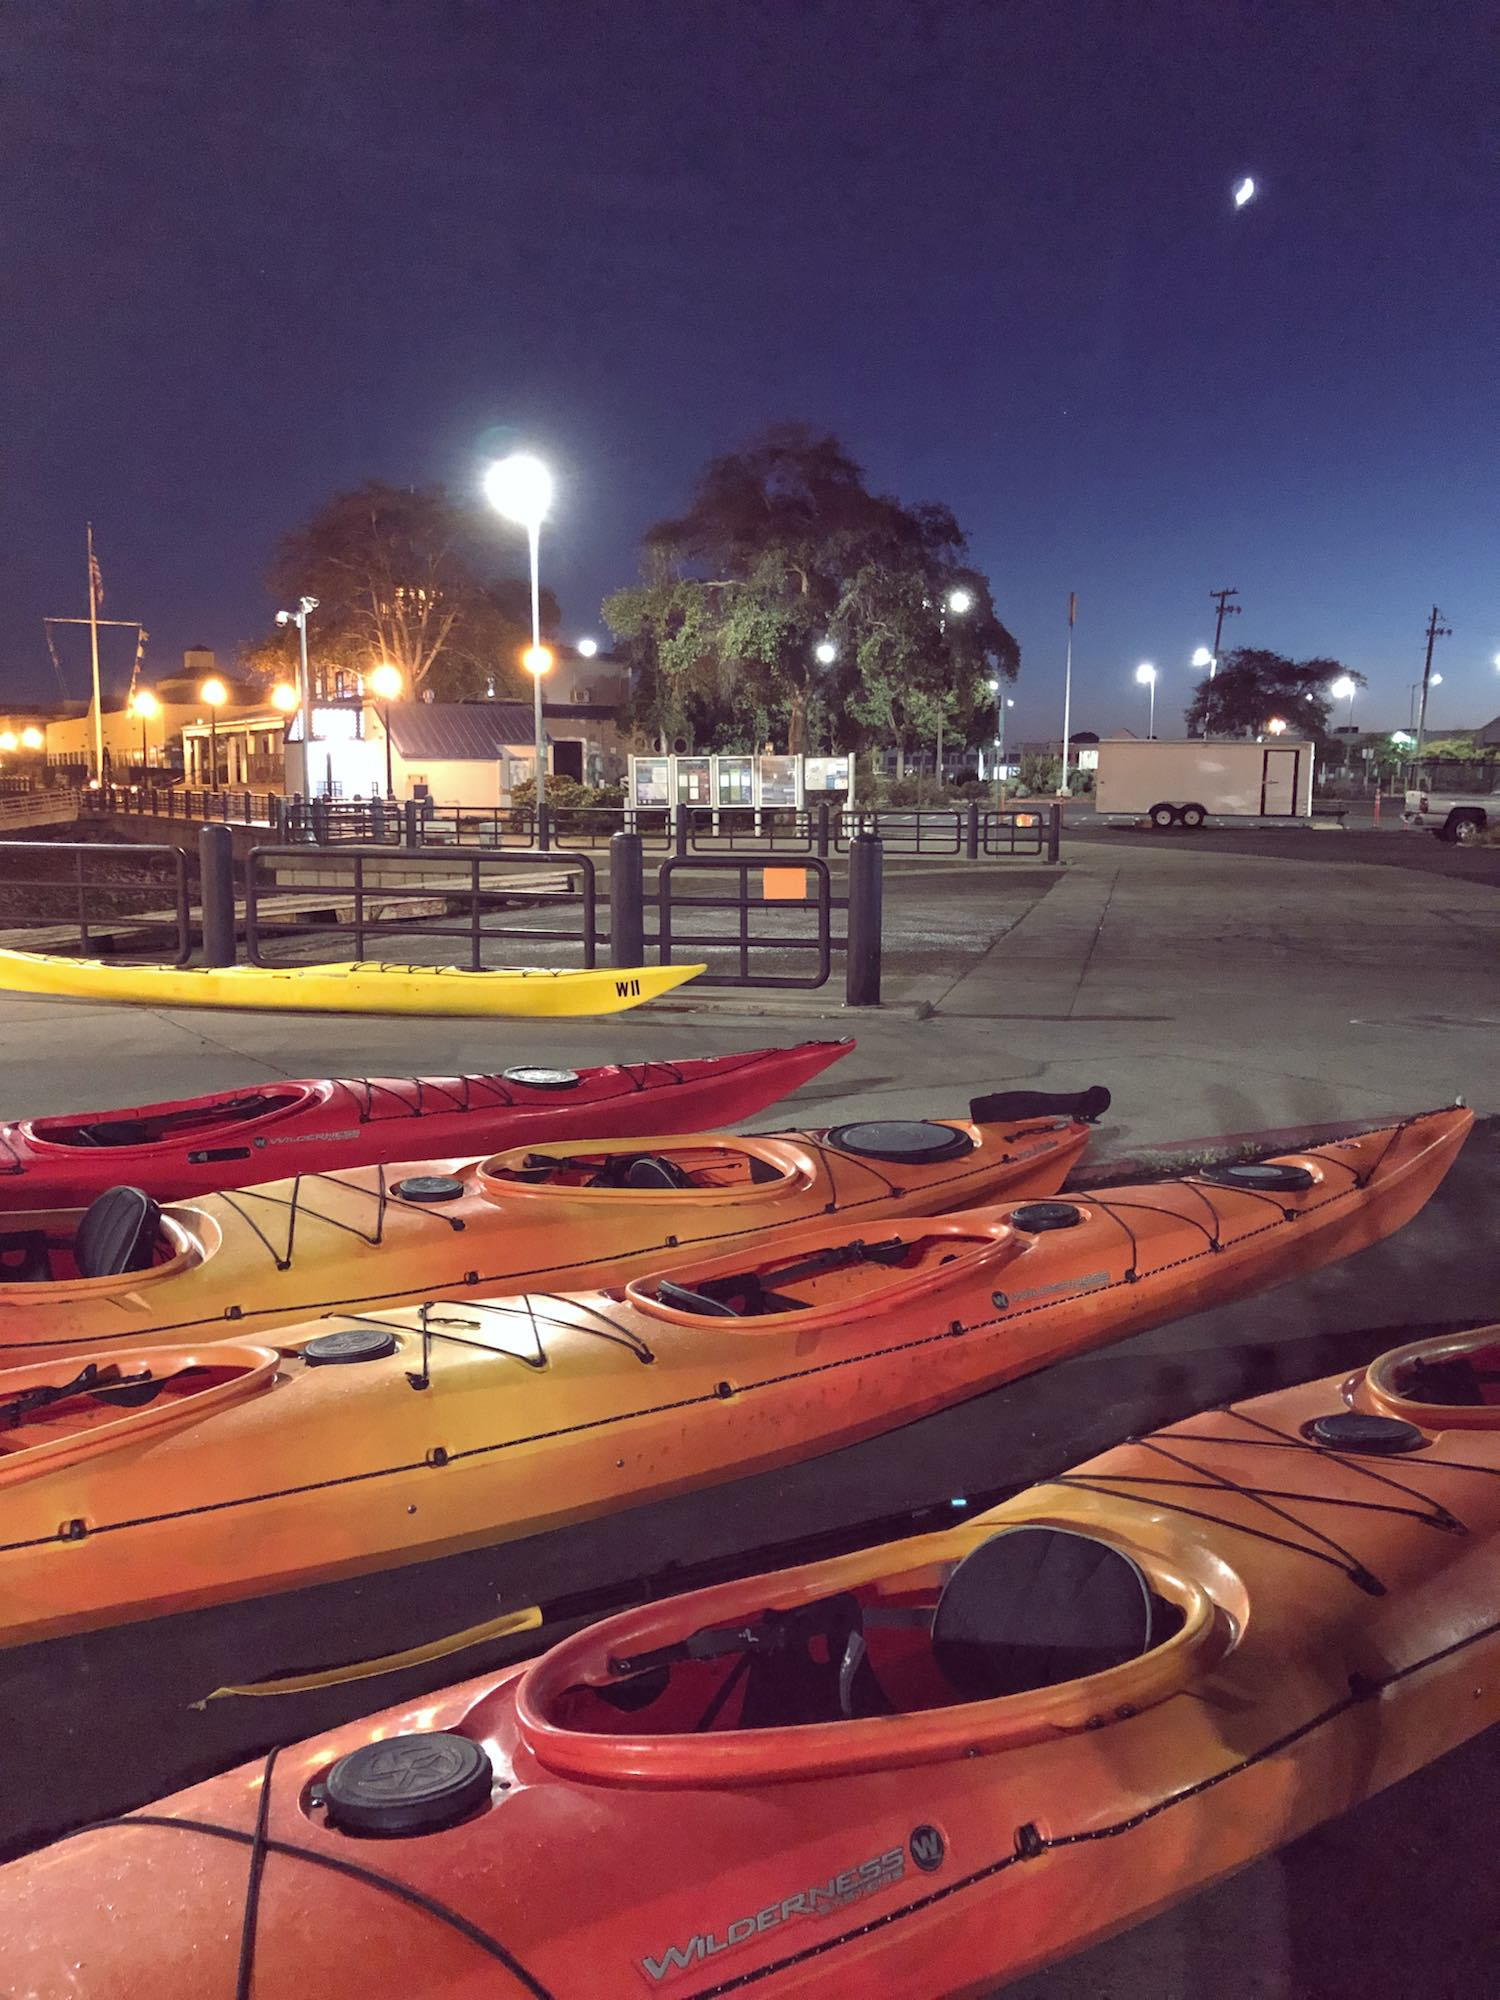 REI Outdoor Classes Moonlight Kayak Class